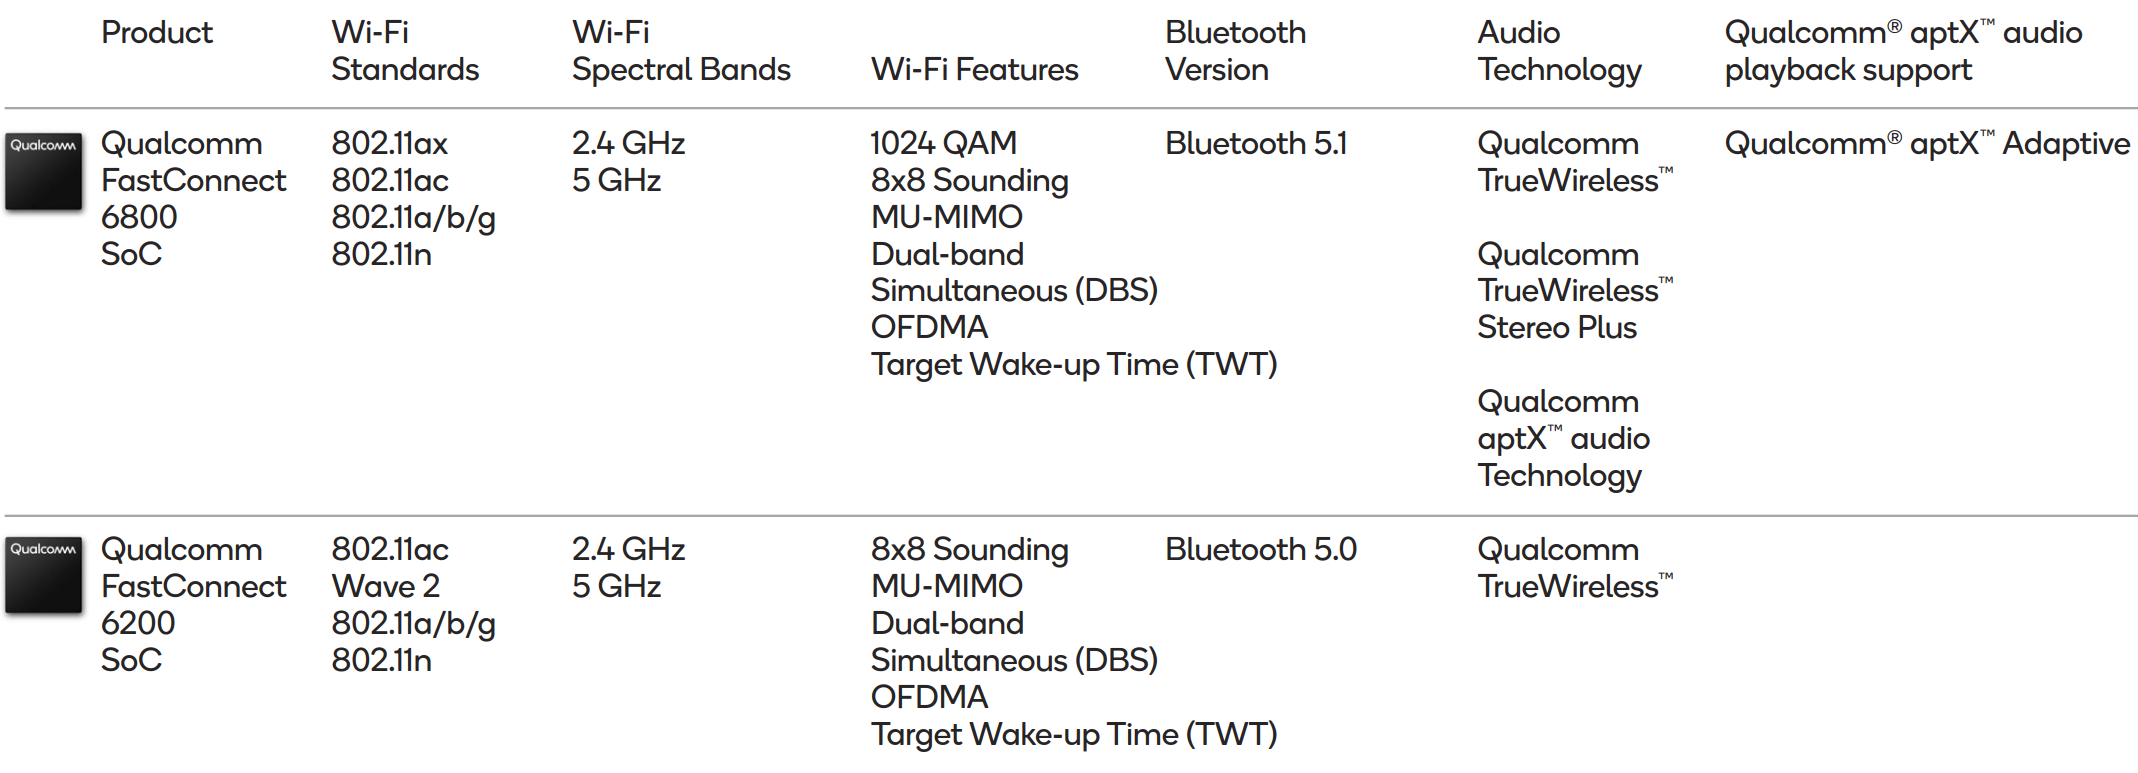 Qualcomm Updates Wi-Fi 6 Lineup: Networking Pro Series for